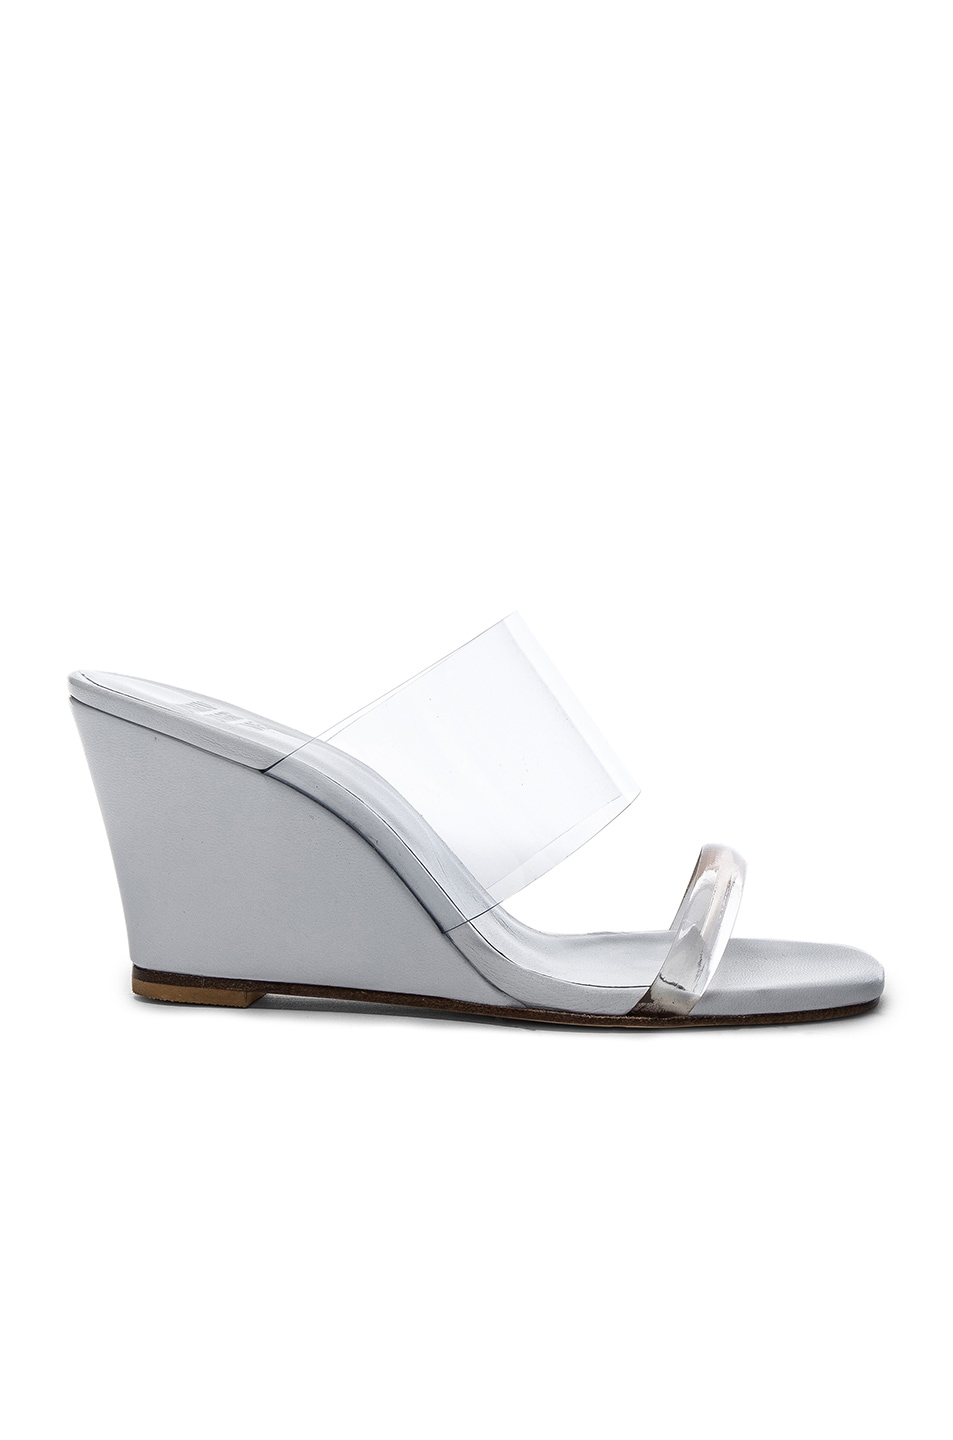 Image 1 of Maryam Nassir Zadeh PVC Olympia Wedges in White Calf & Clear Plastic